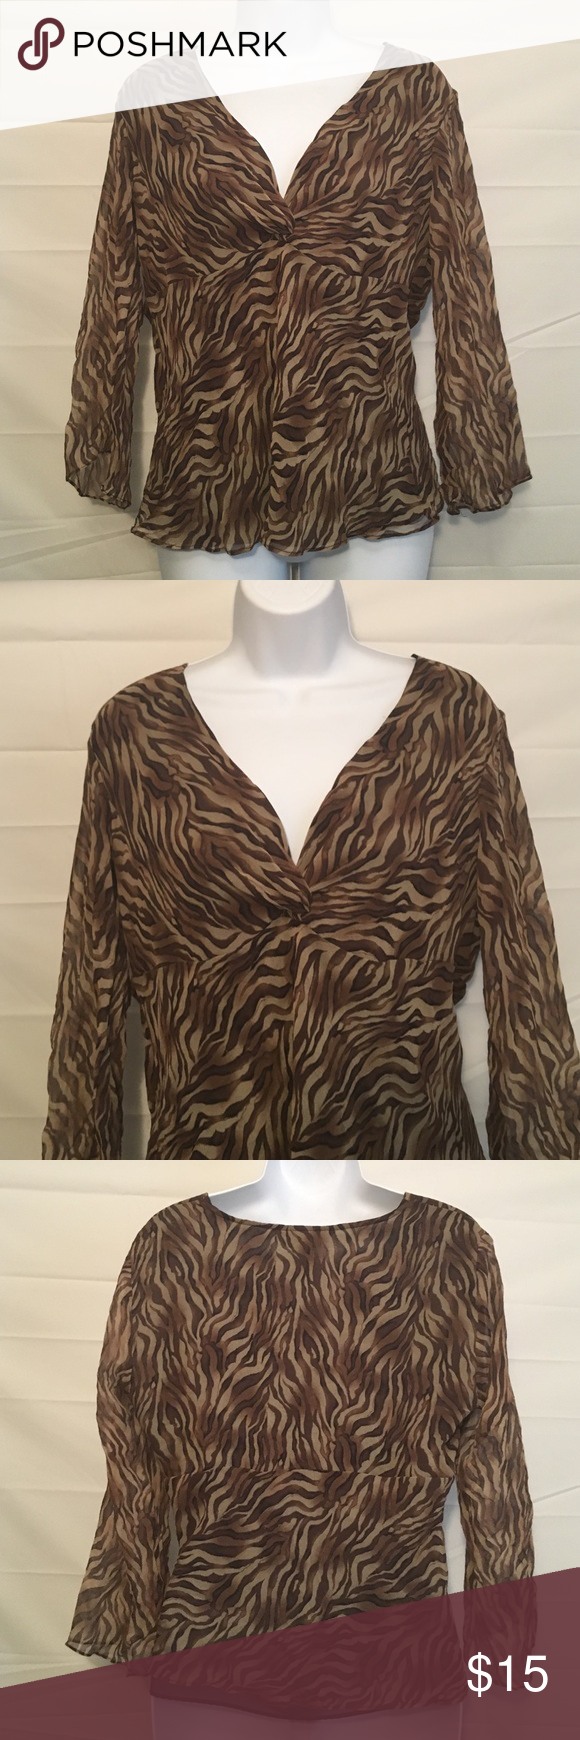 Allison Taylor Large Gorgeous Silk Top Allison Taylor she she Large 100% silk Gorgeous Blouse ....BUNDLE 4 or More SAVE 30%!!....FREE GIFT..Choose your free gift by either commenting on the gift or commenting on one of the items you purchased indicating which # gift you would like!! $$20 purchase or More ONLY!!! Allison Taylor Tops Blouses